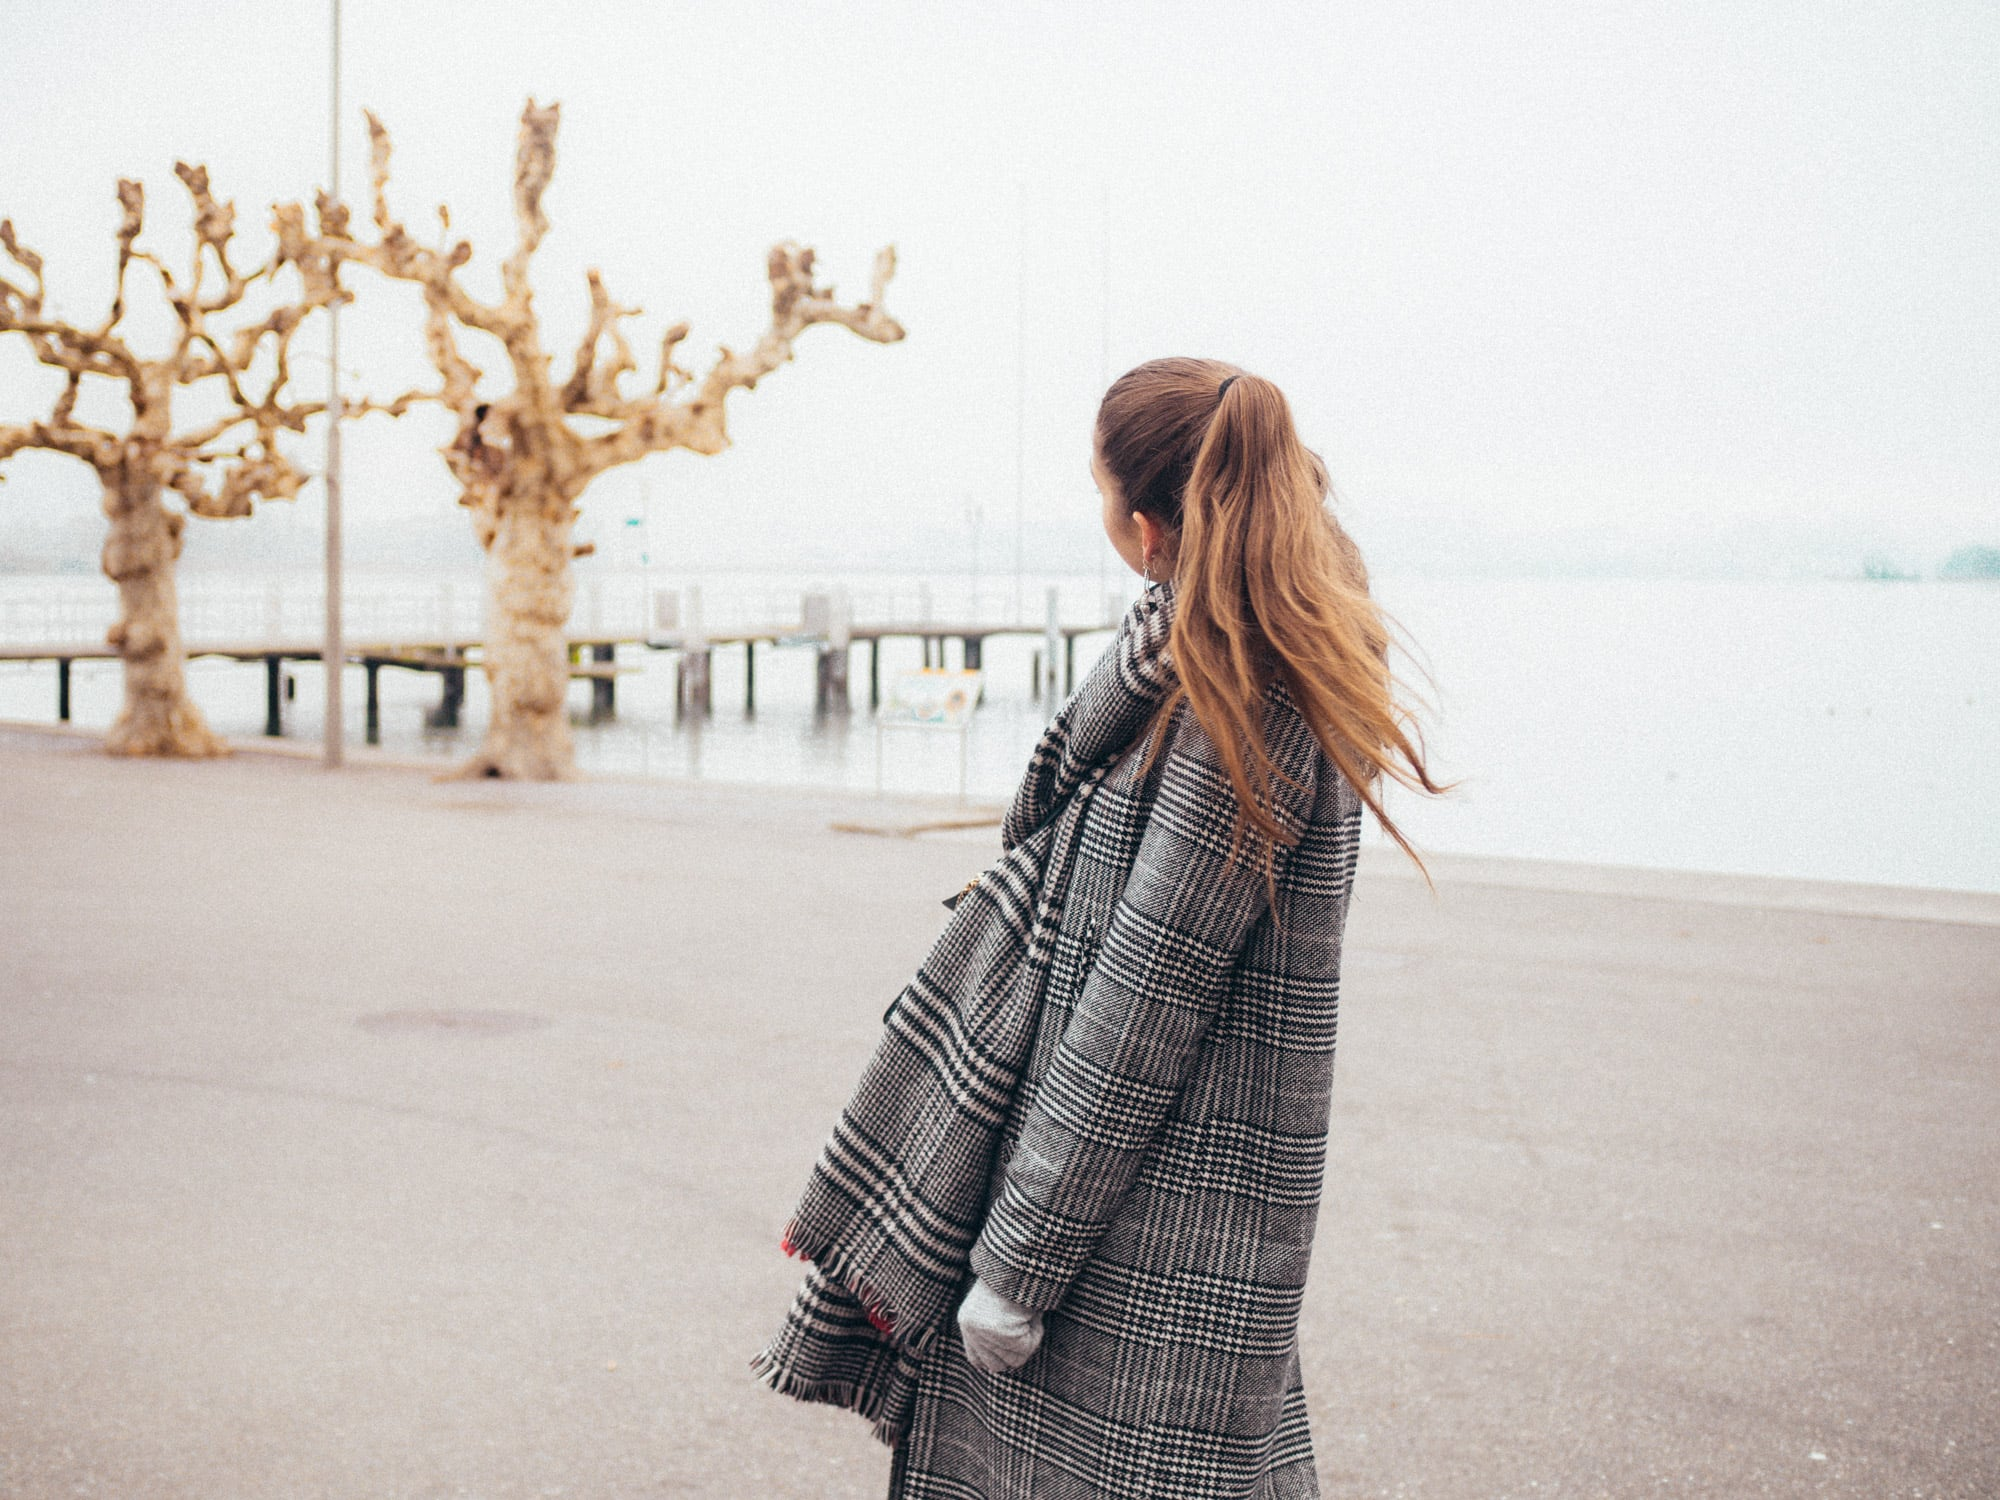 Checked-Coat/Chloé-Bag/Oversized-Coat/Outfit/Fashion/Outfitpost/Outfit-Photo/Lake